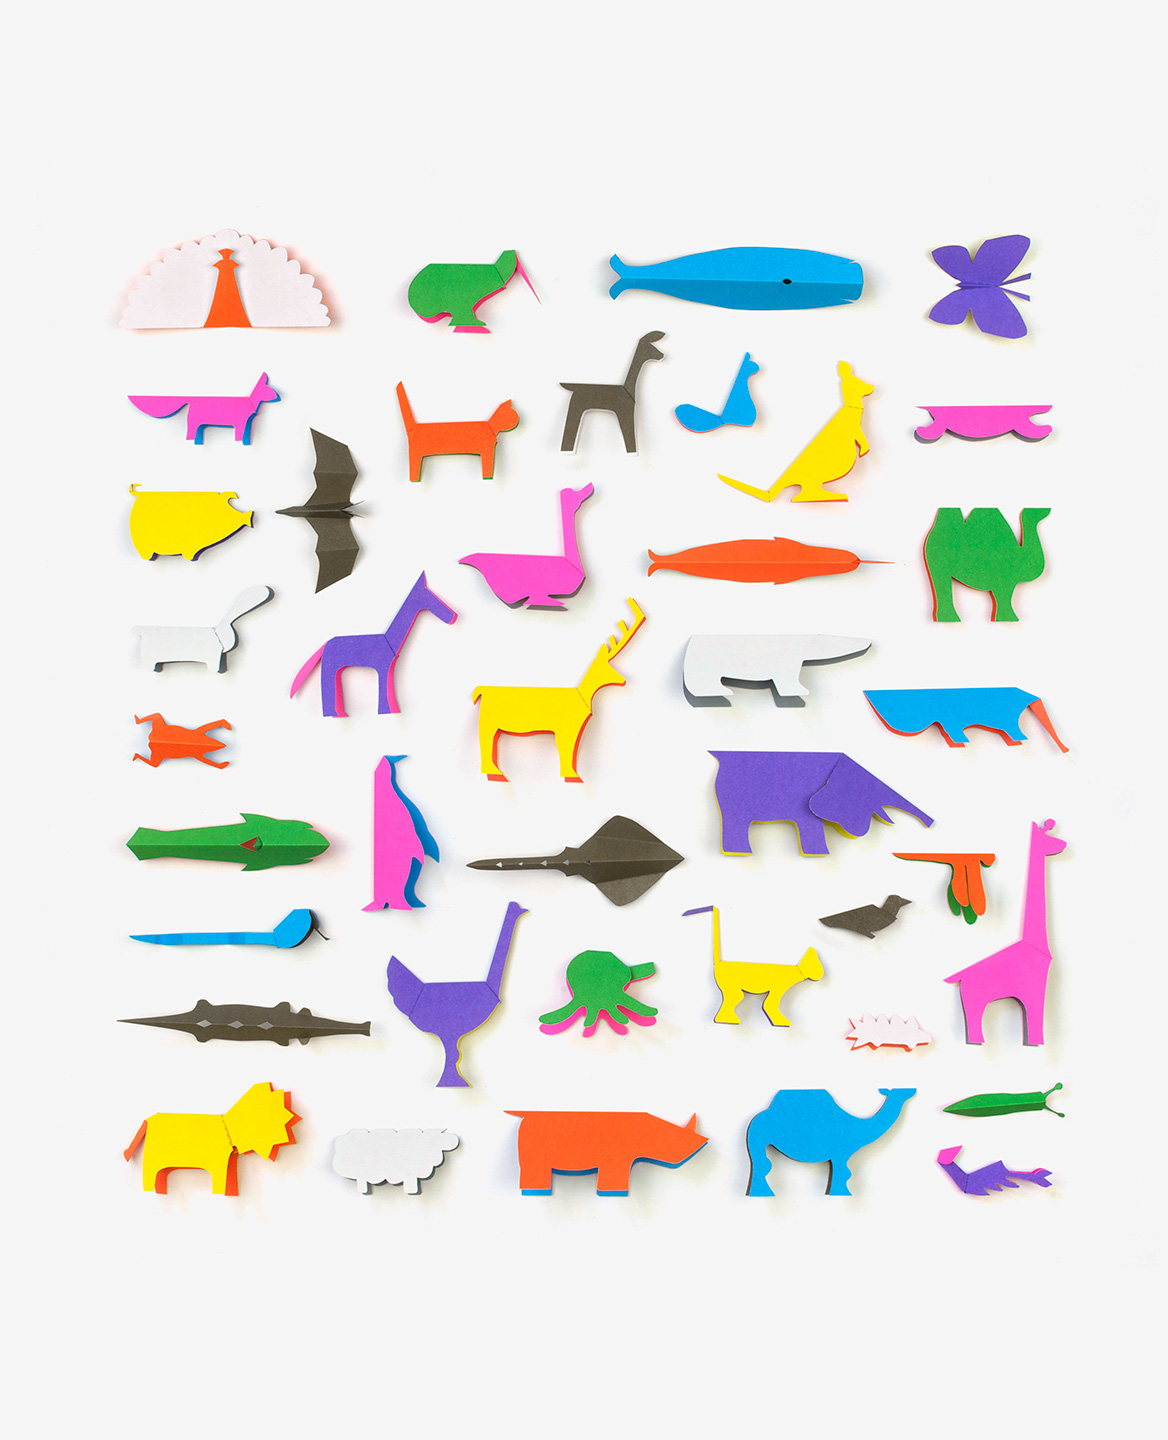 40 origami animals from the book Zoo in my hand by Inkyeong & Sunkyung Kim published by Éditions du livre